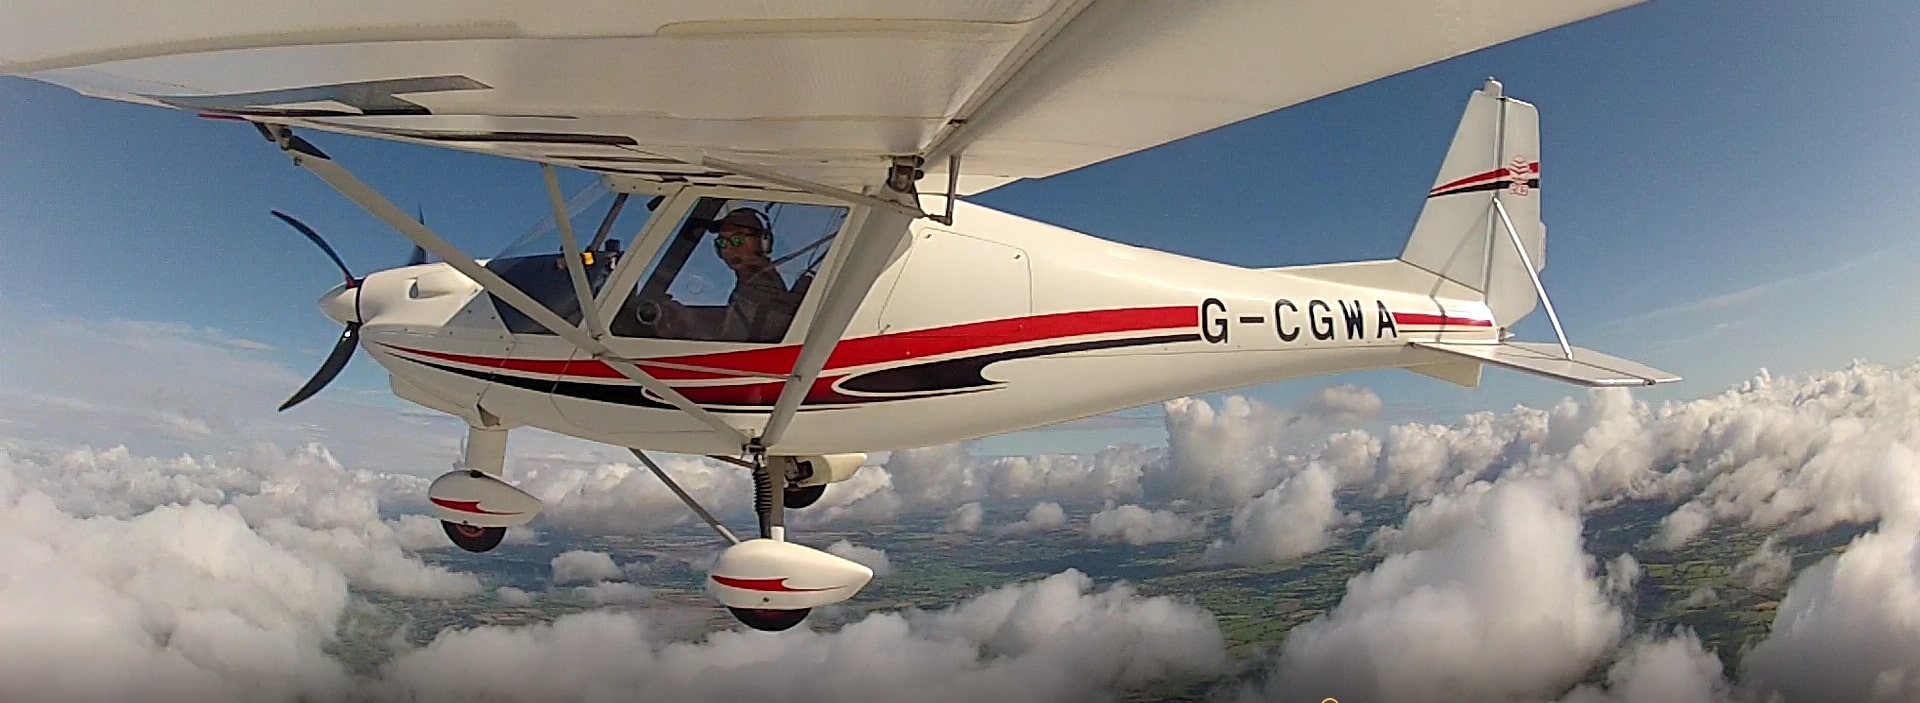 Flying a microlight